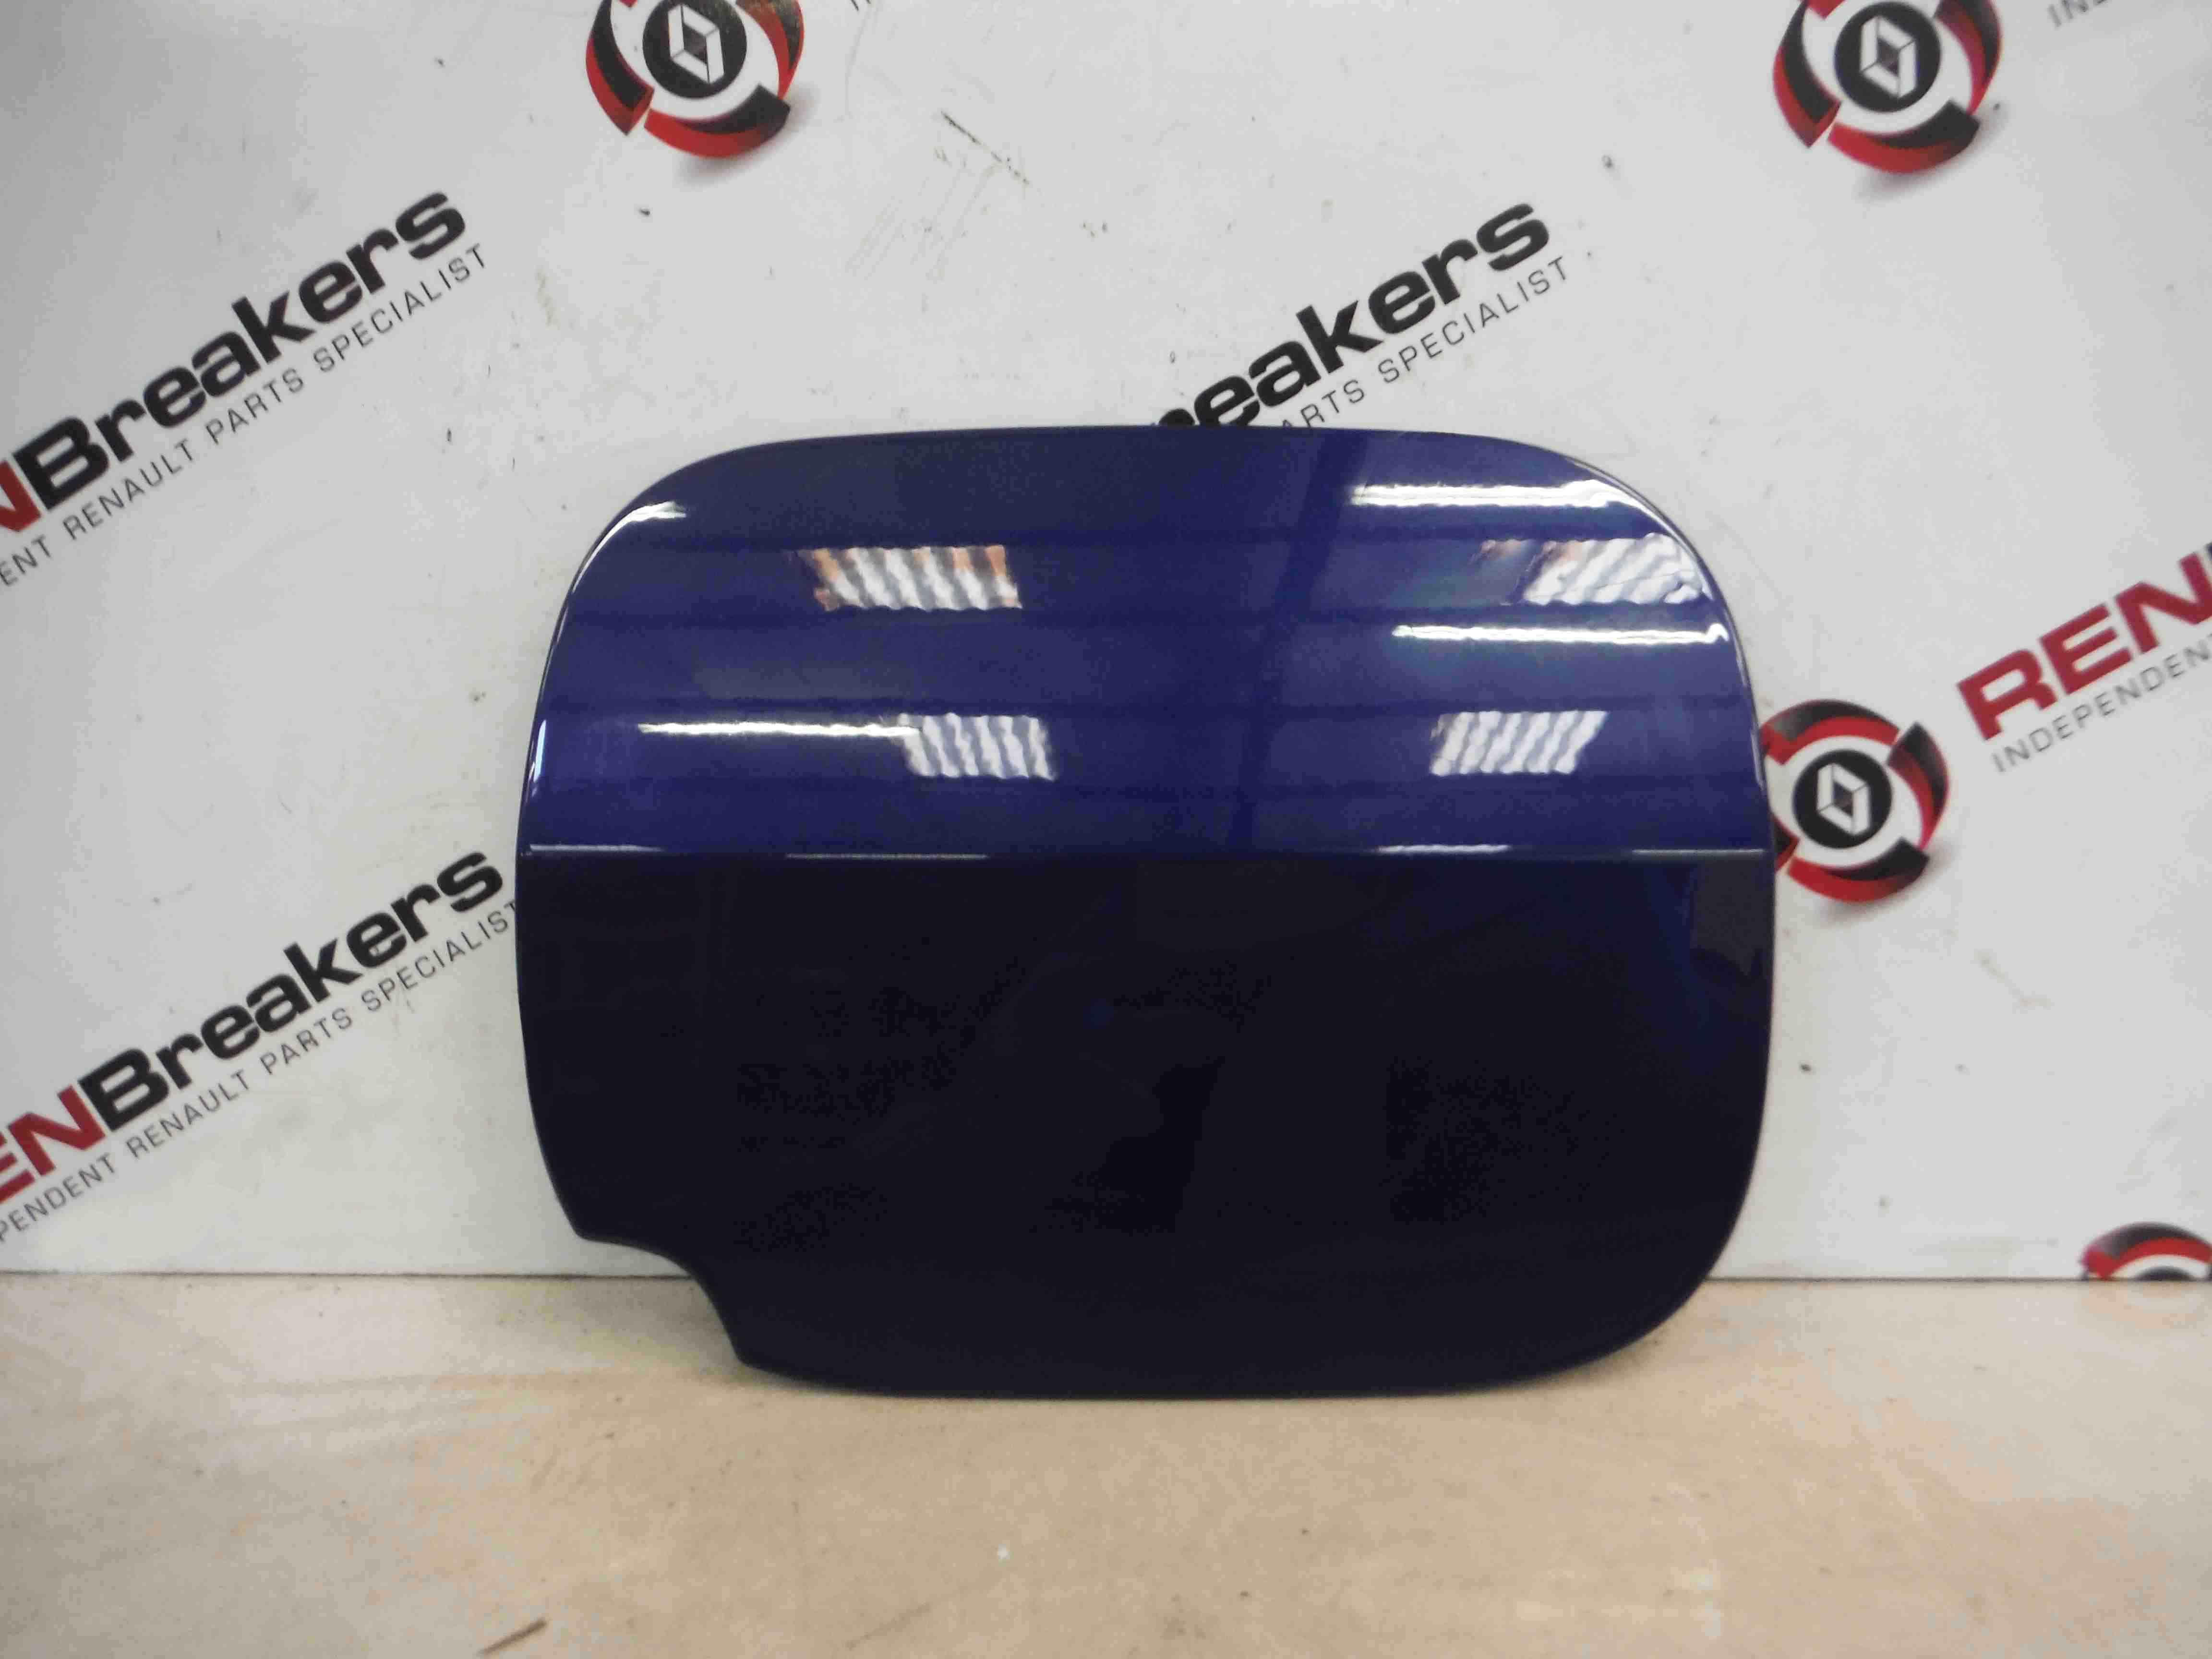 Renault Clio MK3 2005-2009 Fuel Cap Flap Cover Blue NV432  8200290088